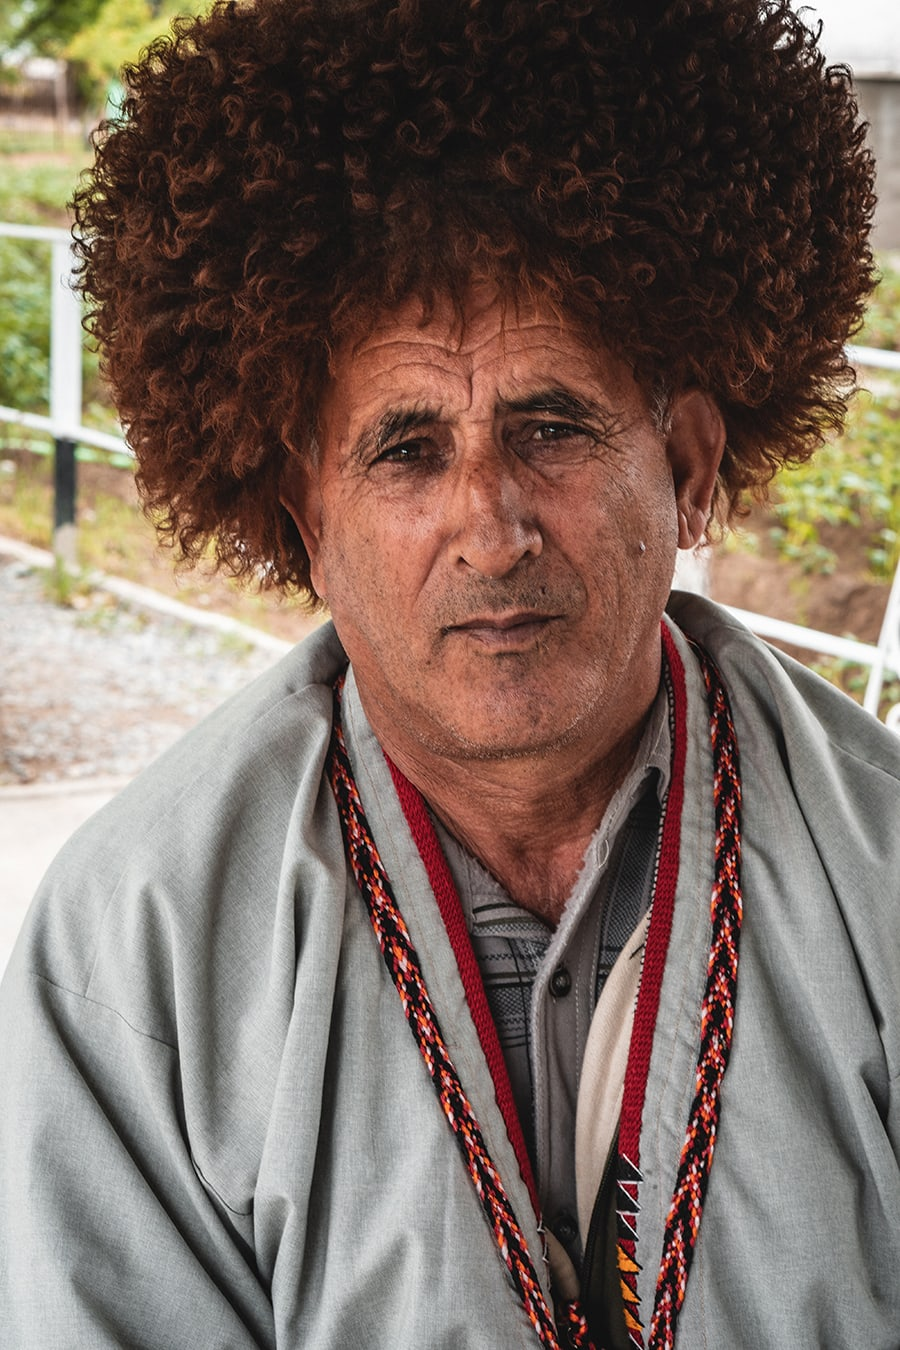 A Turkmen man wearing a traditional hat known as a Telpak.